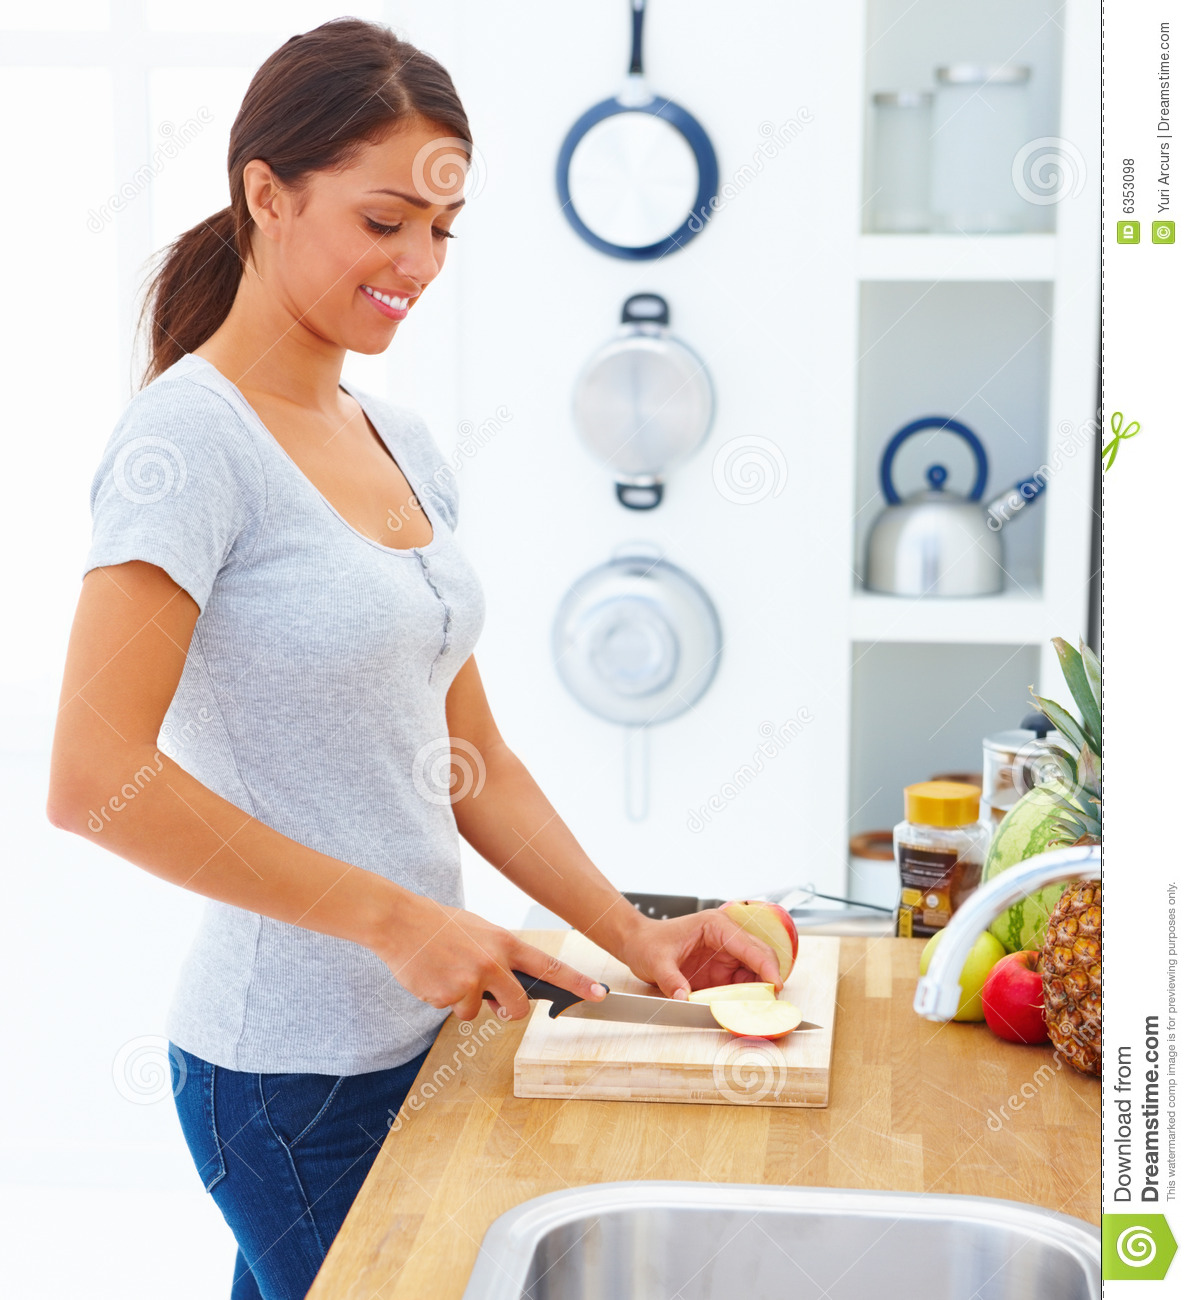 Royalty Free Stock Photos: Happy Girl Cutting Apple In The